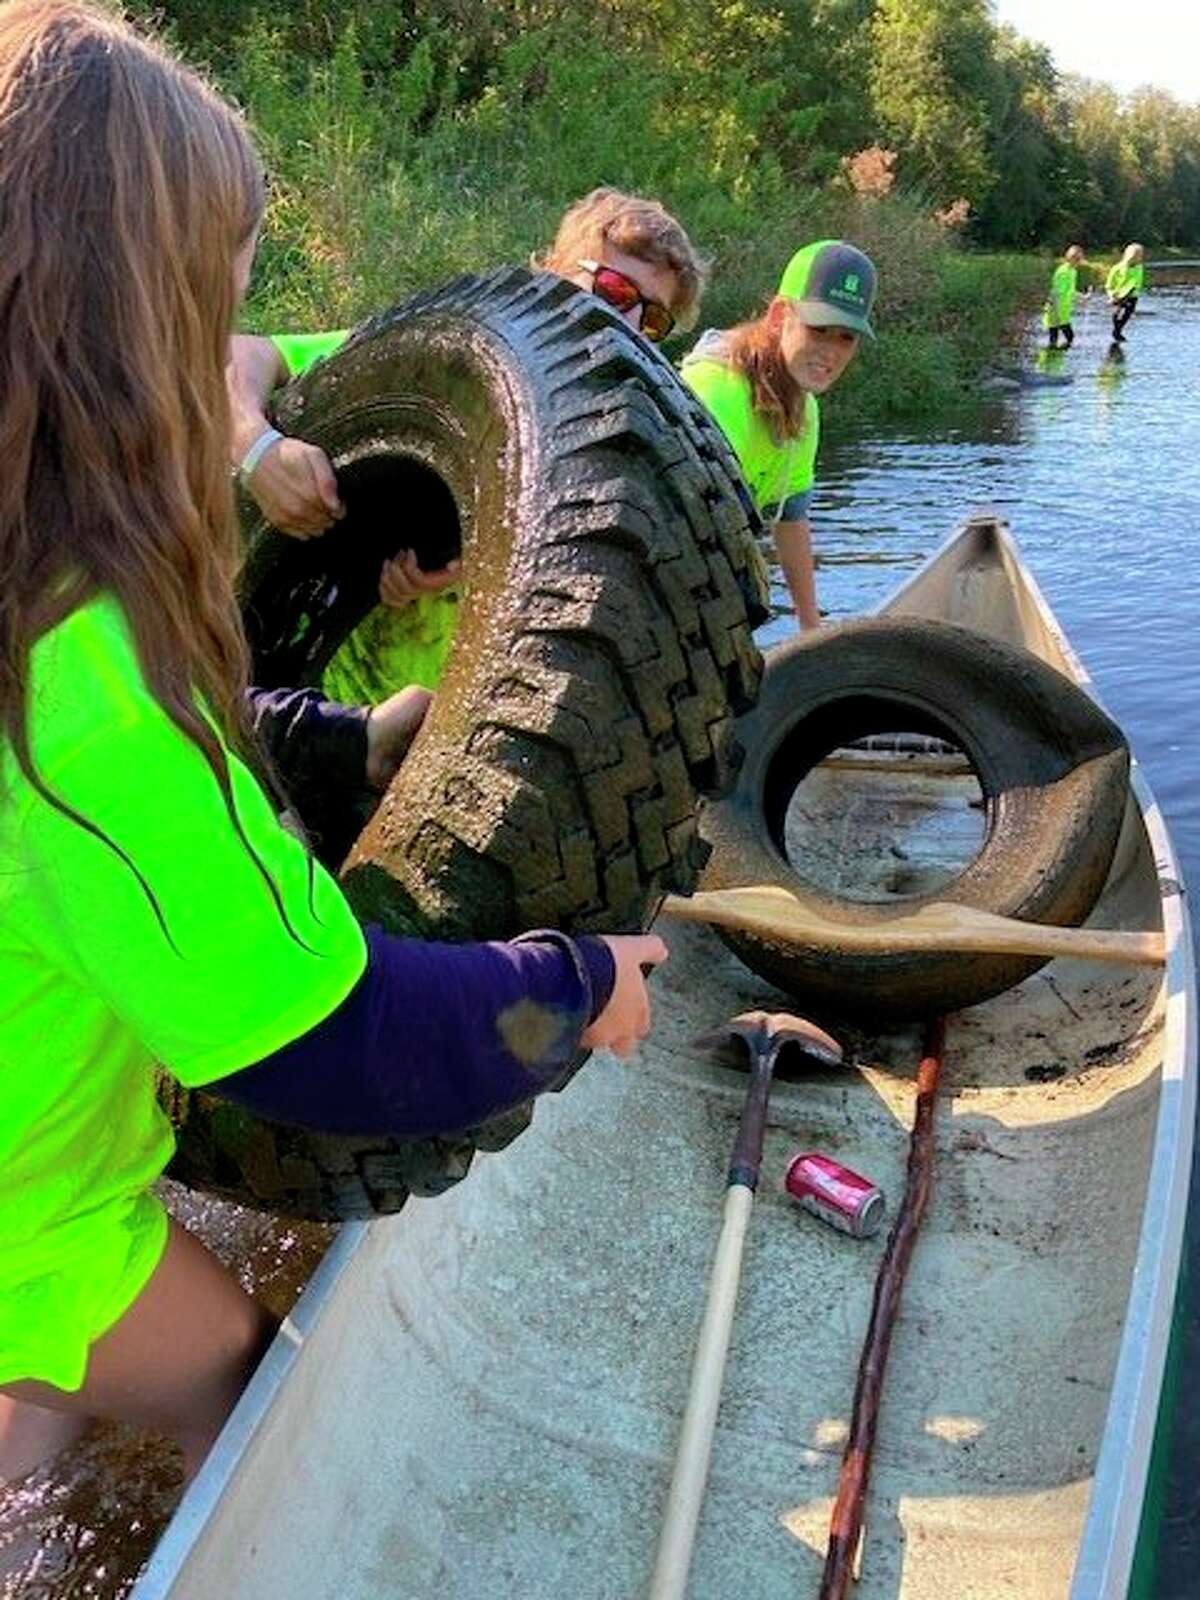 Tuscola County 4-H Youth Council kids were hard at workextracting tires and other trash fromthe Cass River last Saturday. (Tom Lounsbury/Hearst Michigan)